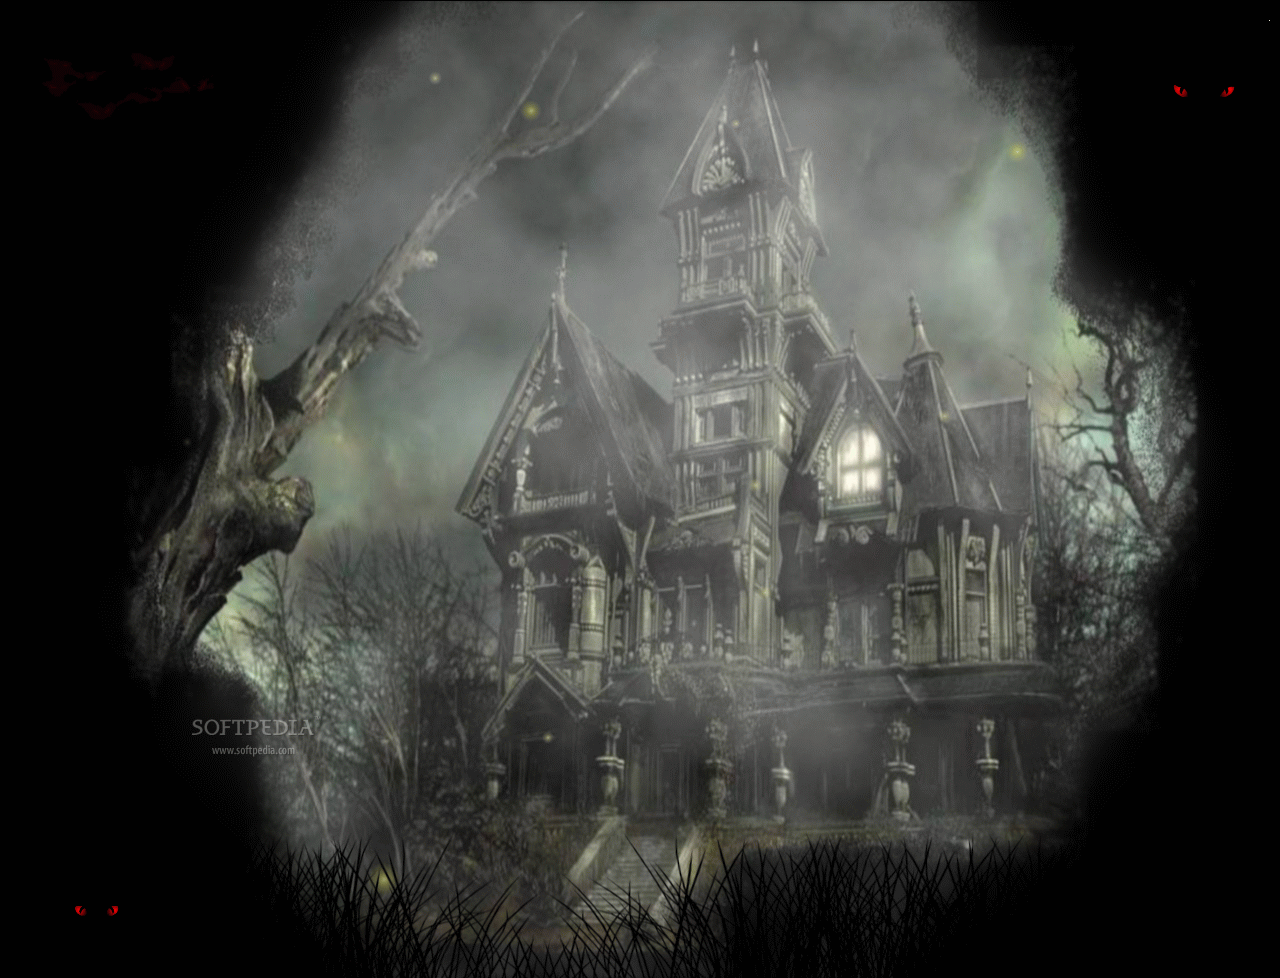 Halloween Mansion Animated Wallpaper   Halloween Mansion Animated 1280x978